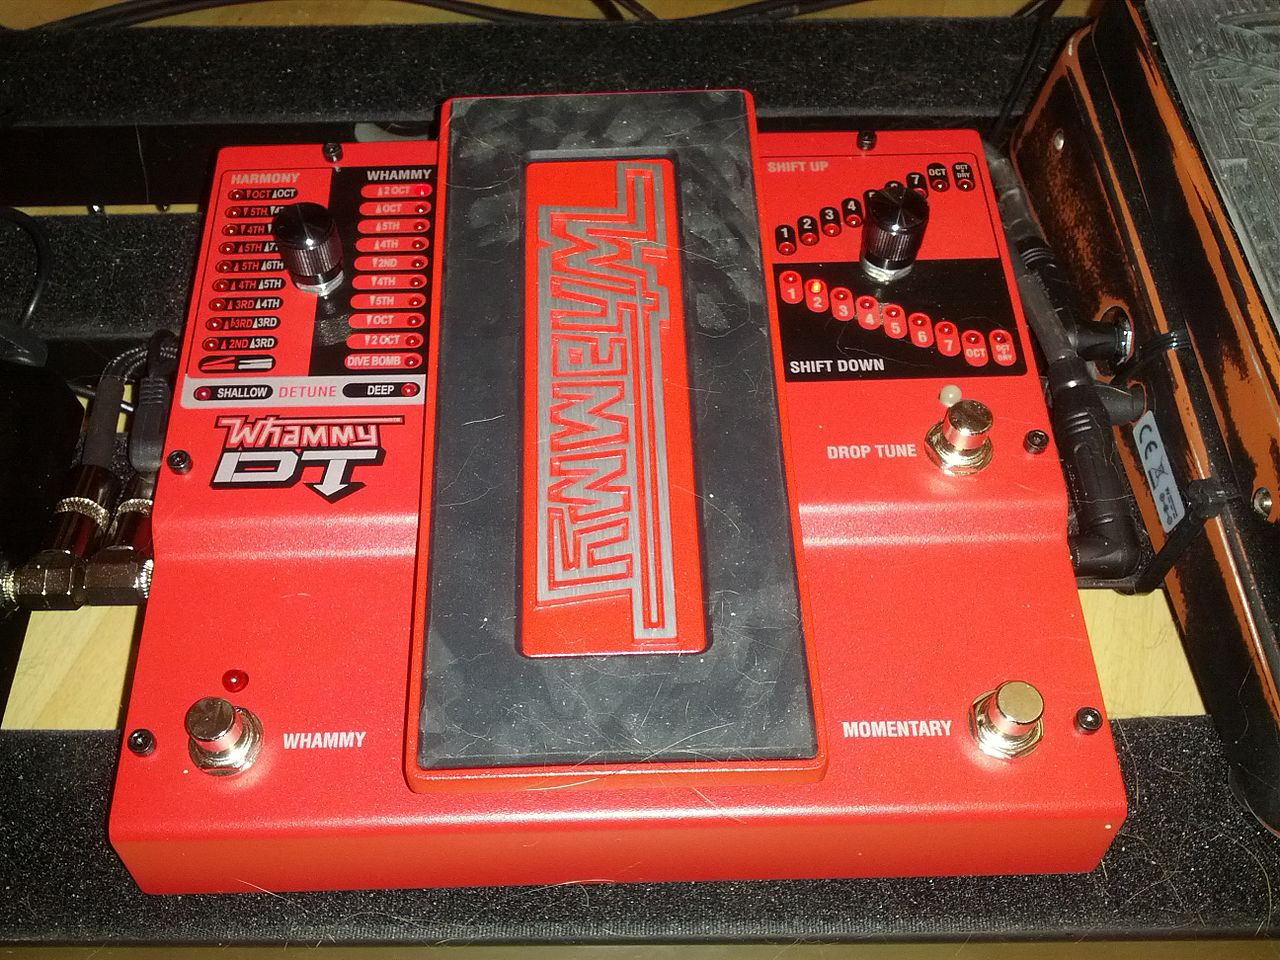 file digitech whammy dt i got a new guitar pedal 2013 03 27 by mike prosser jpg. Black Bedroom Furniture Sets. Home Design Ideas